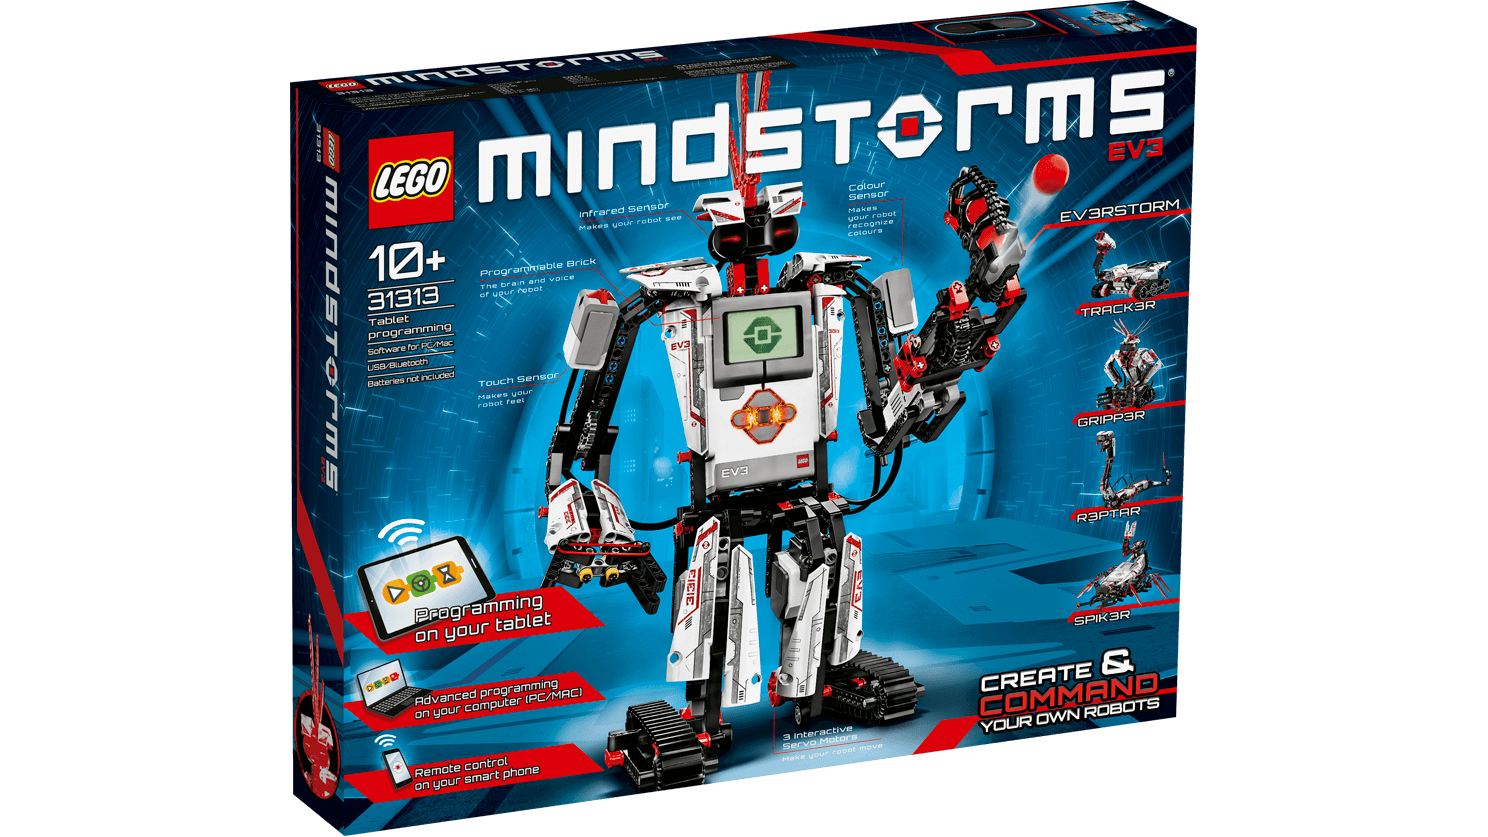 Jouet Lego Mindstorms EV3, le top de l'innovation